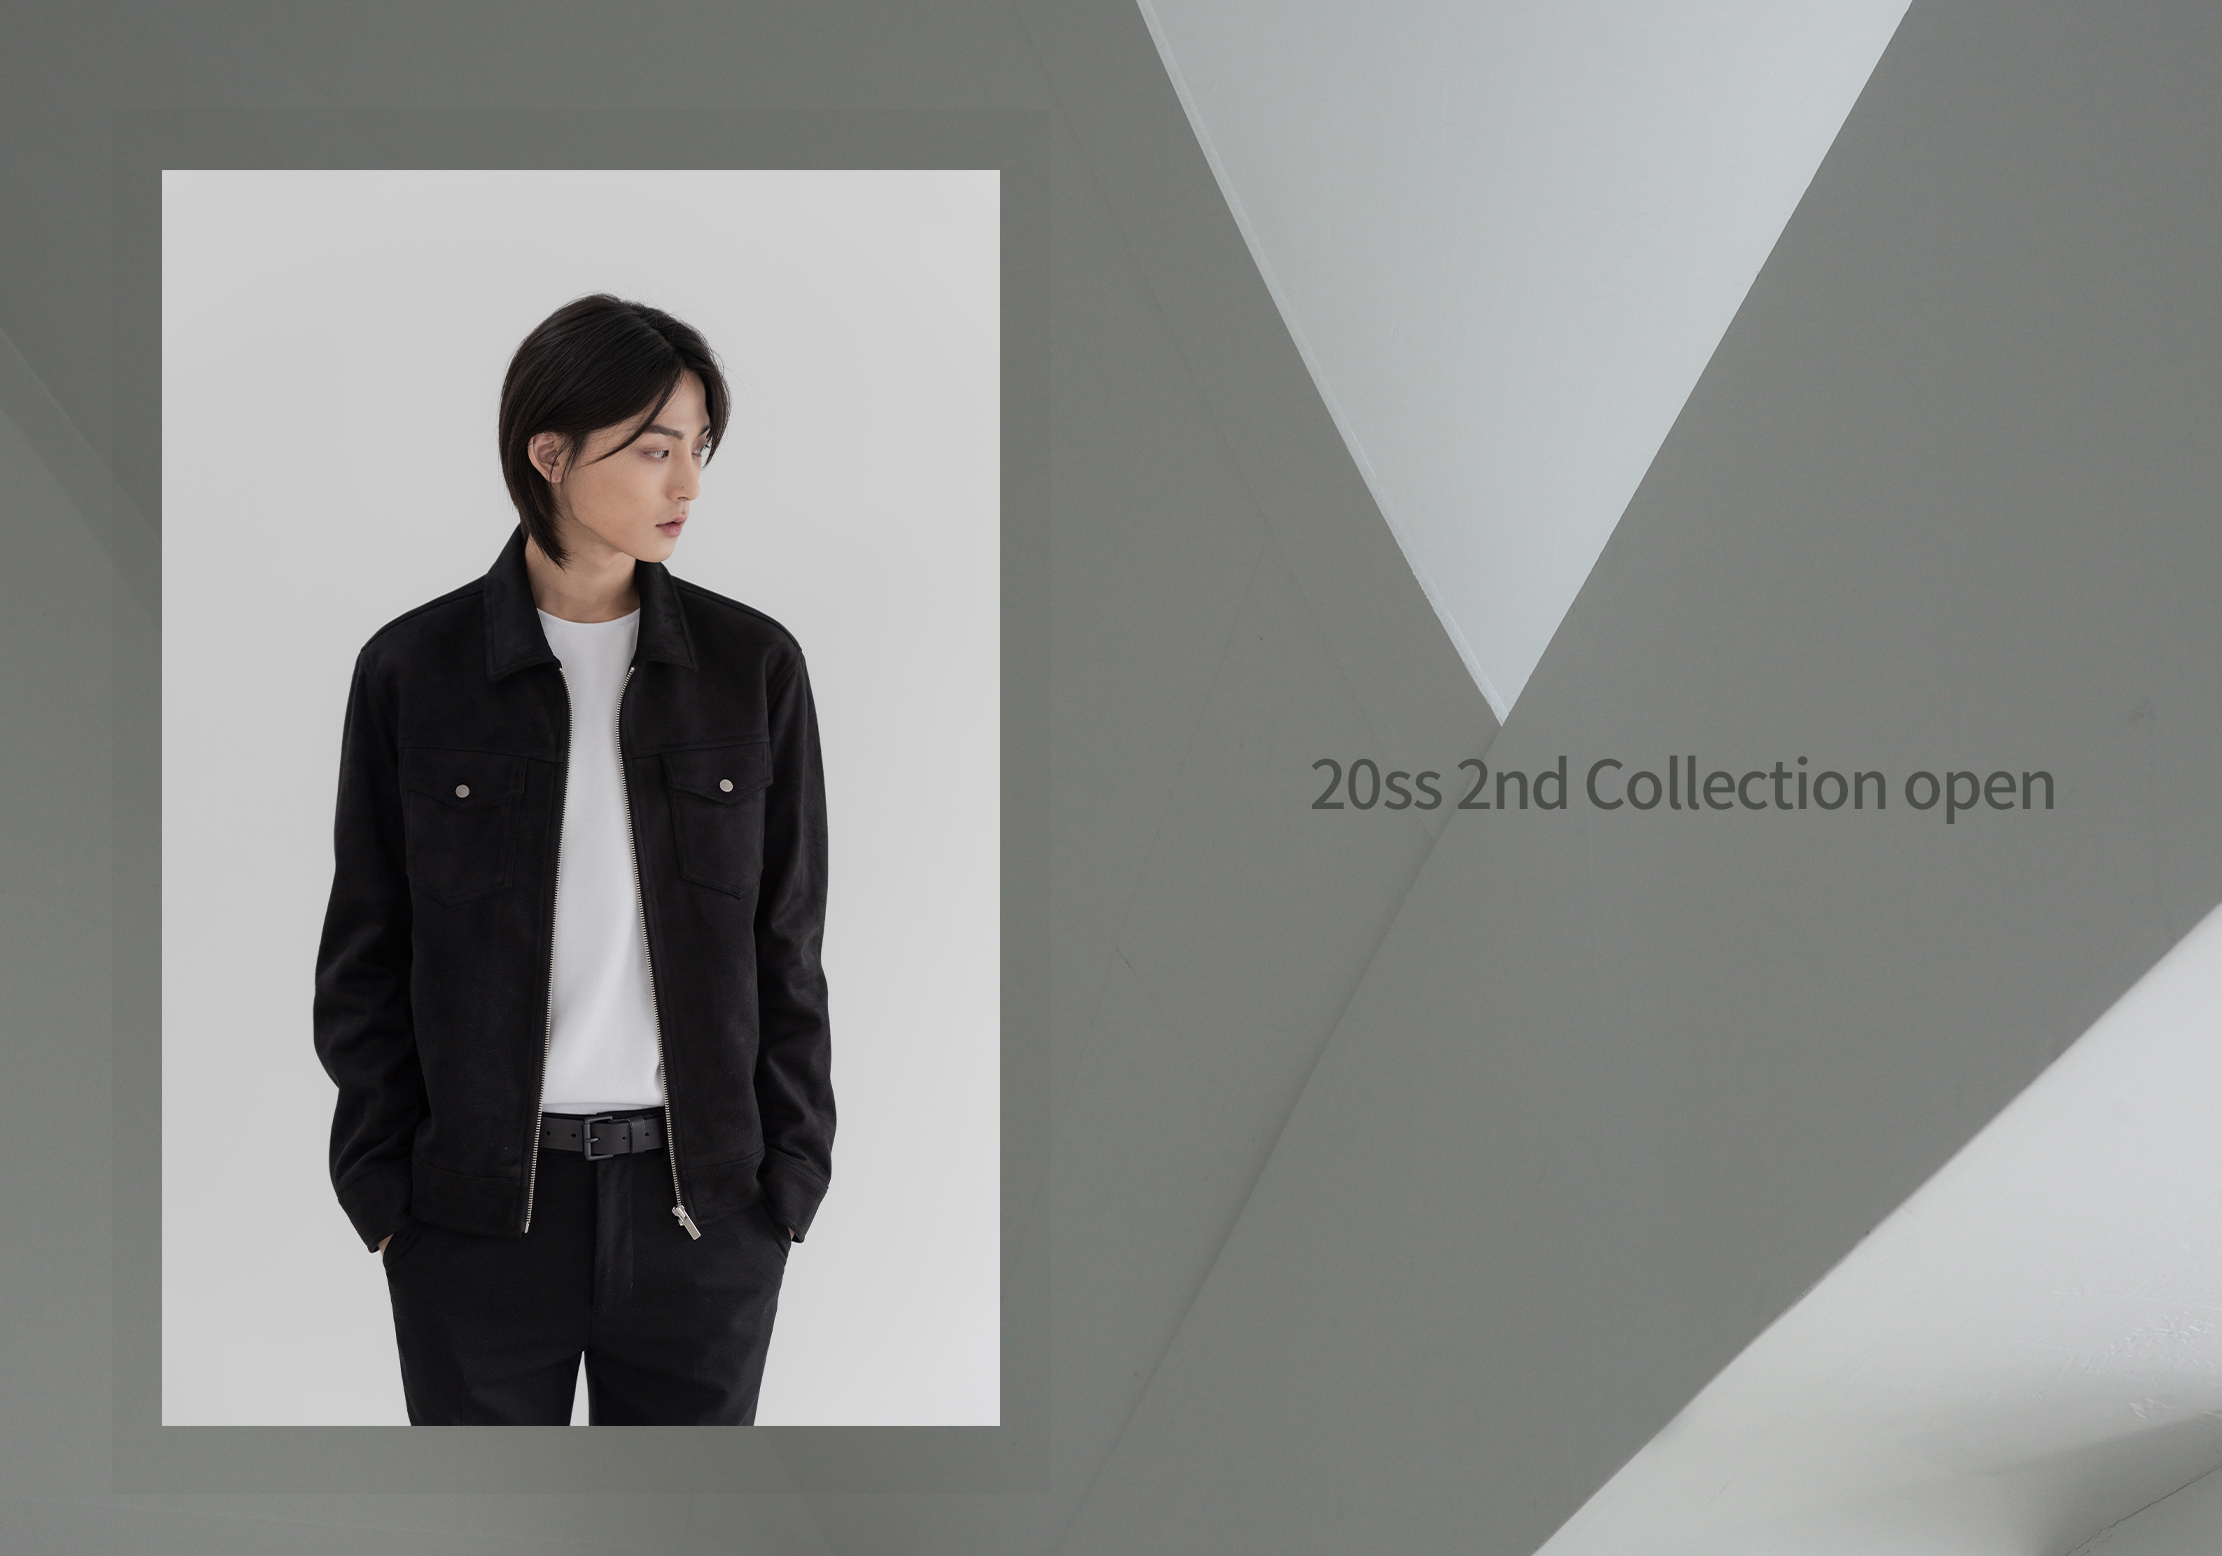 20ss 2nd new Collection